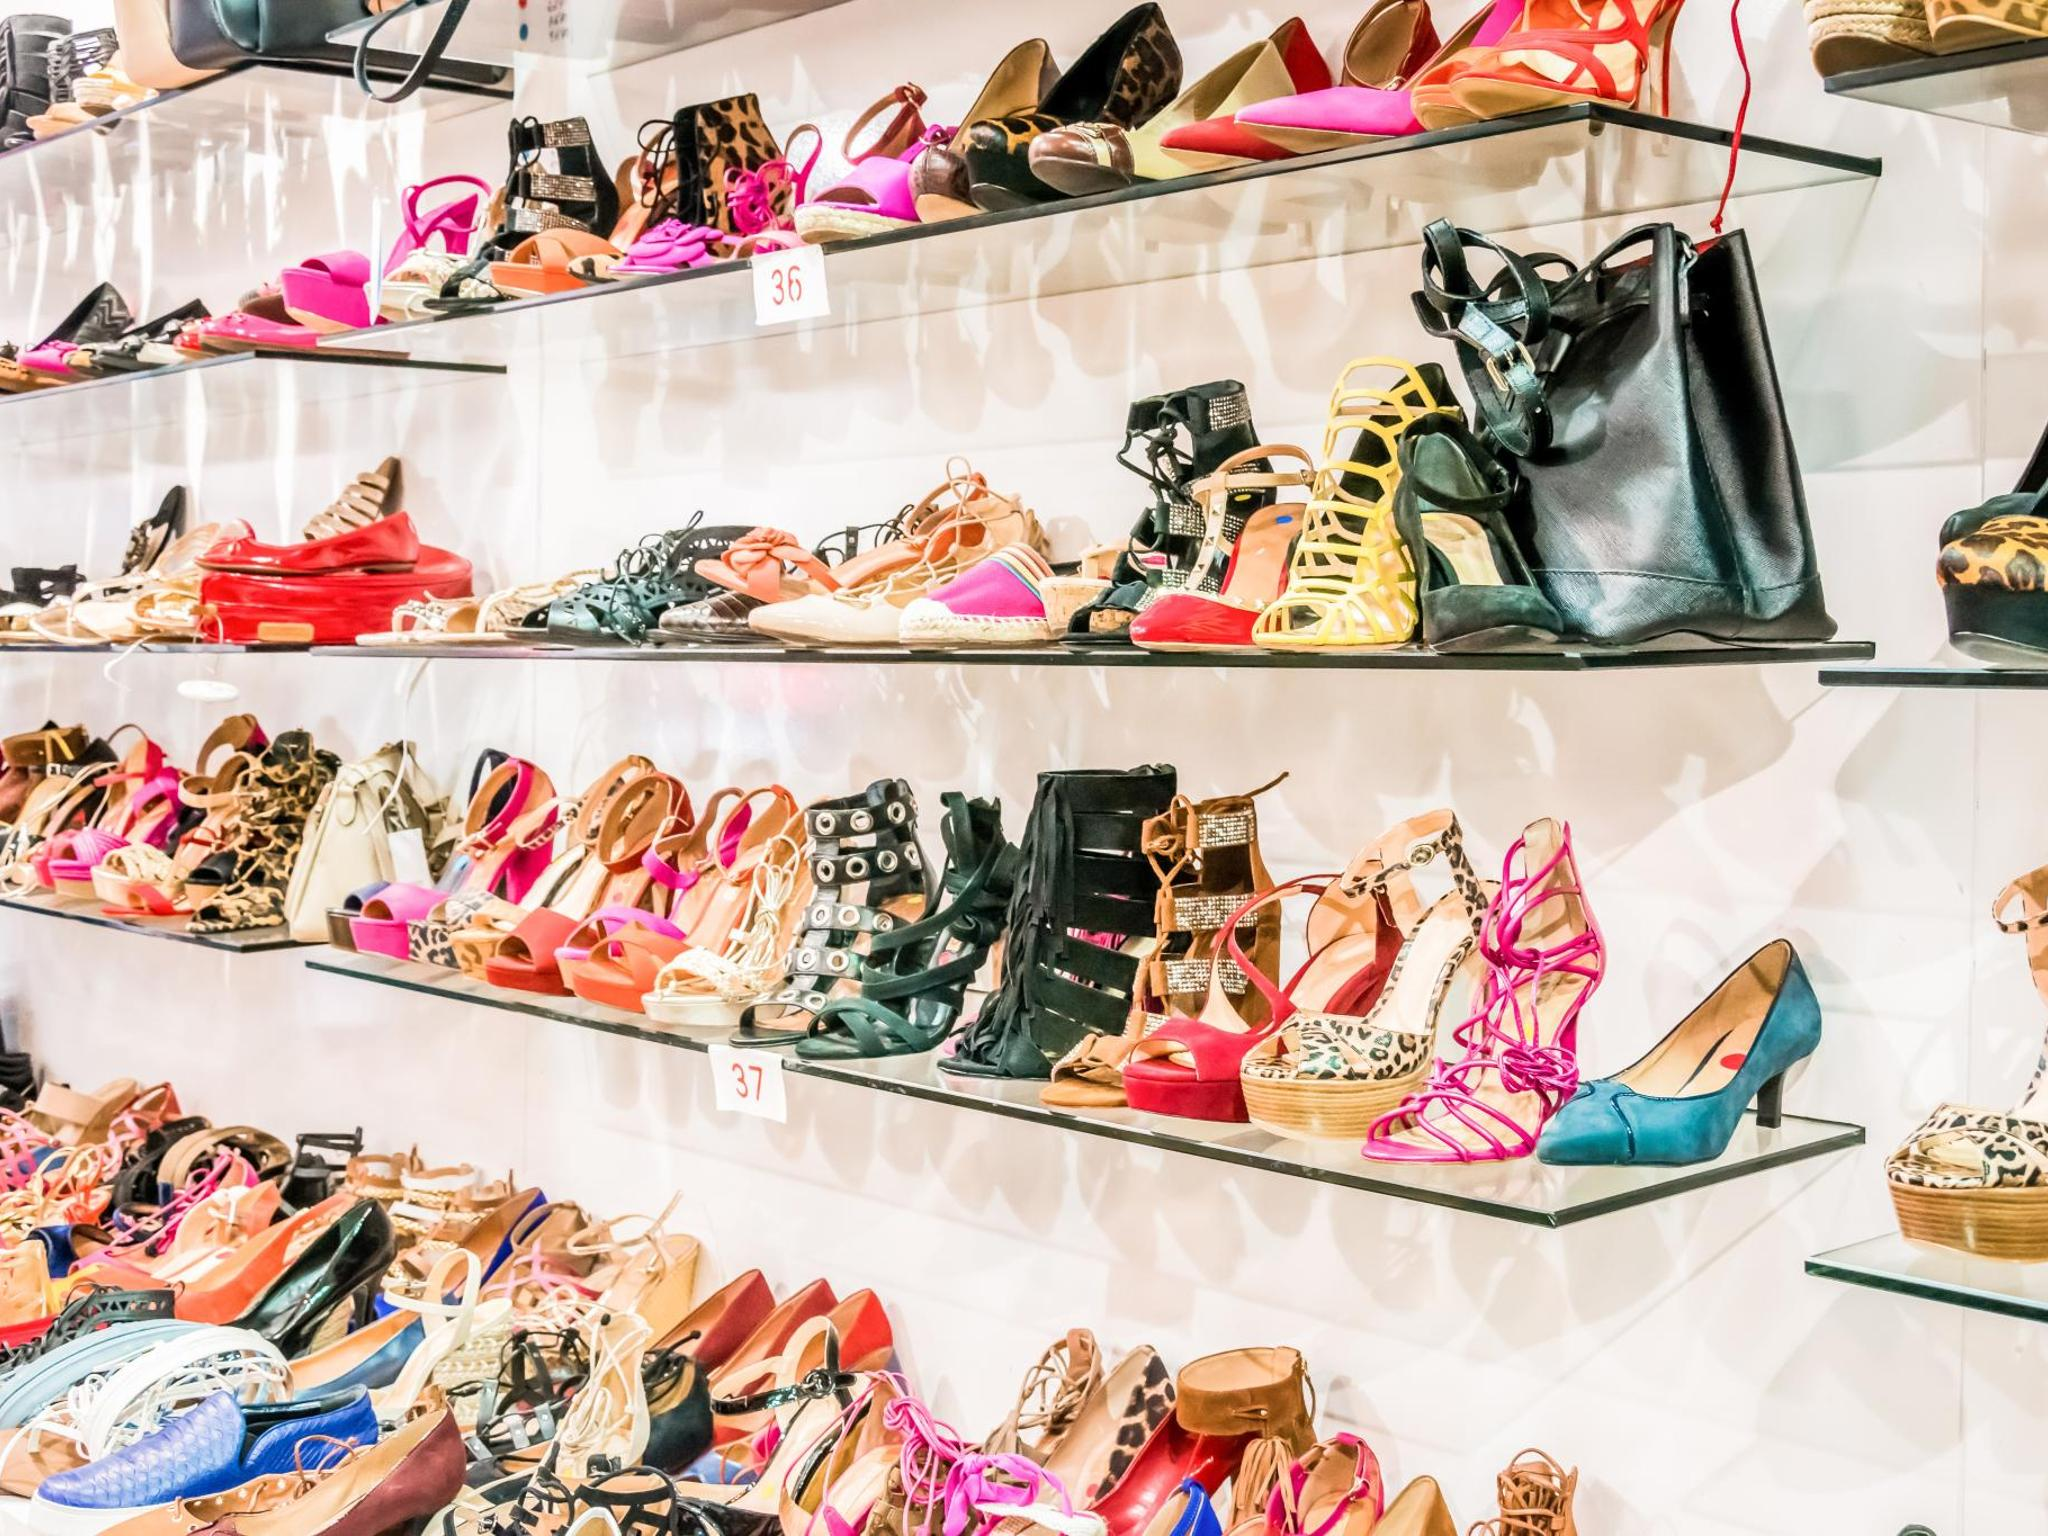 alquiler asqueroso crédito  5 of the world's best shoe shopping spots | Booking.com